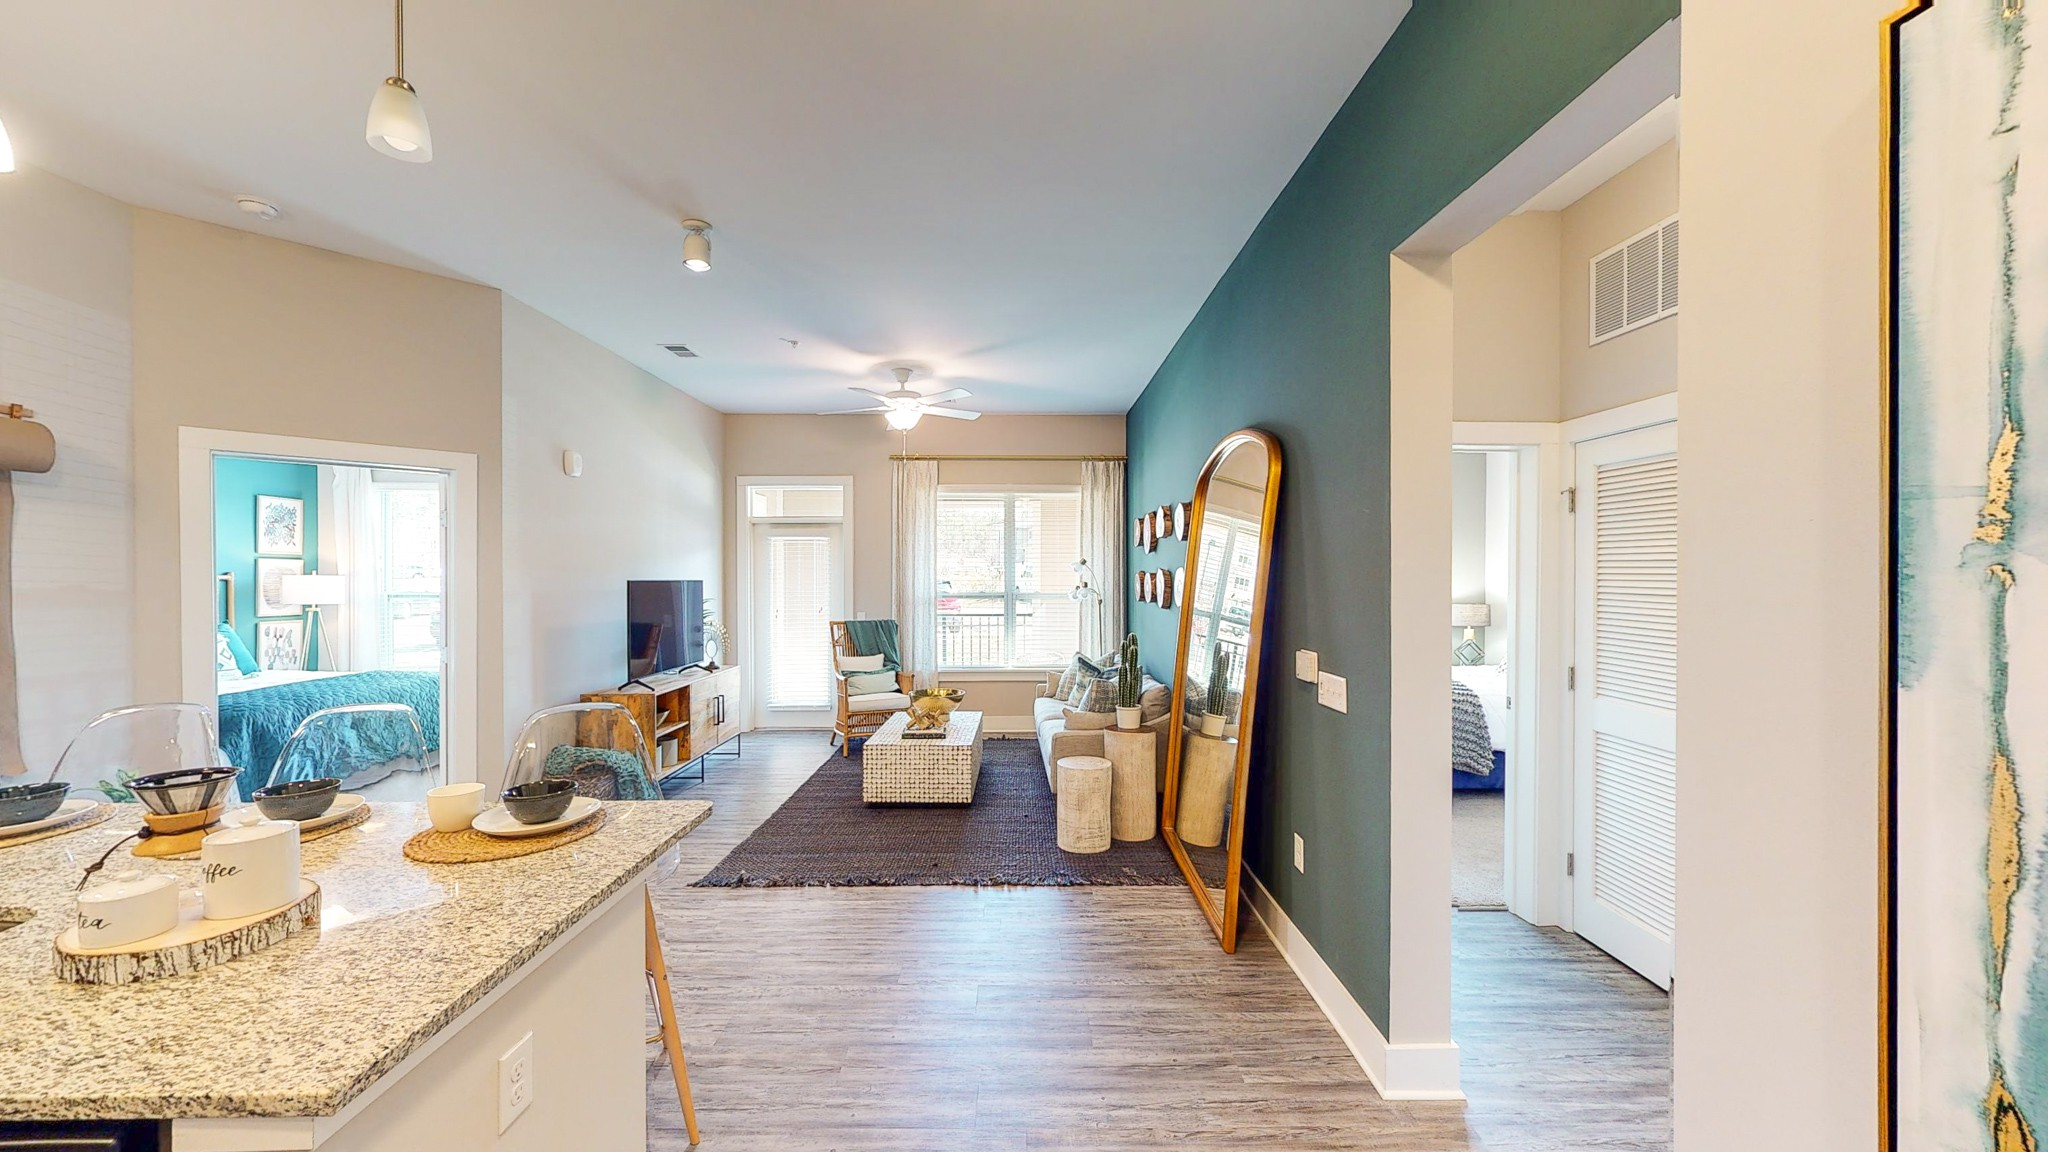 Apartments Near NC State Abberly Solaire for North Carolina State University Students in Raleigh, NC